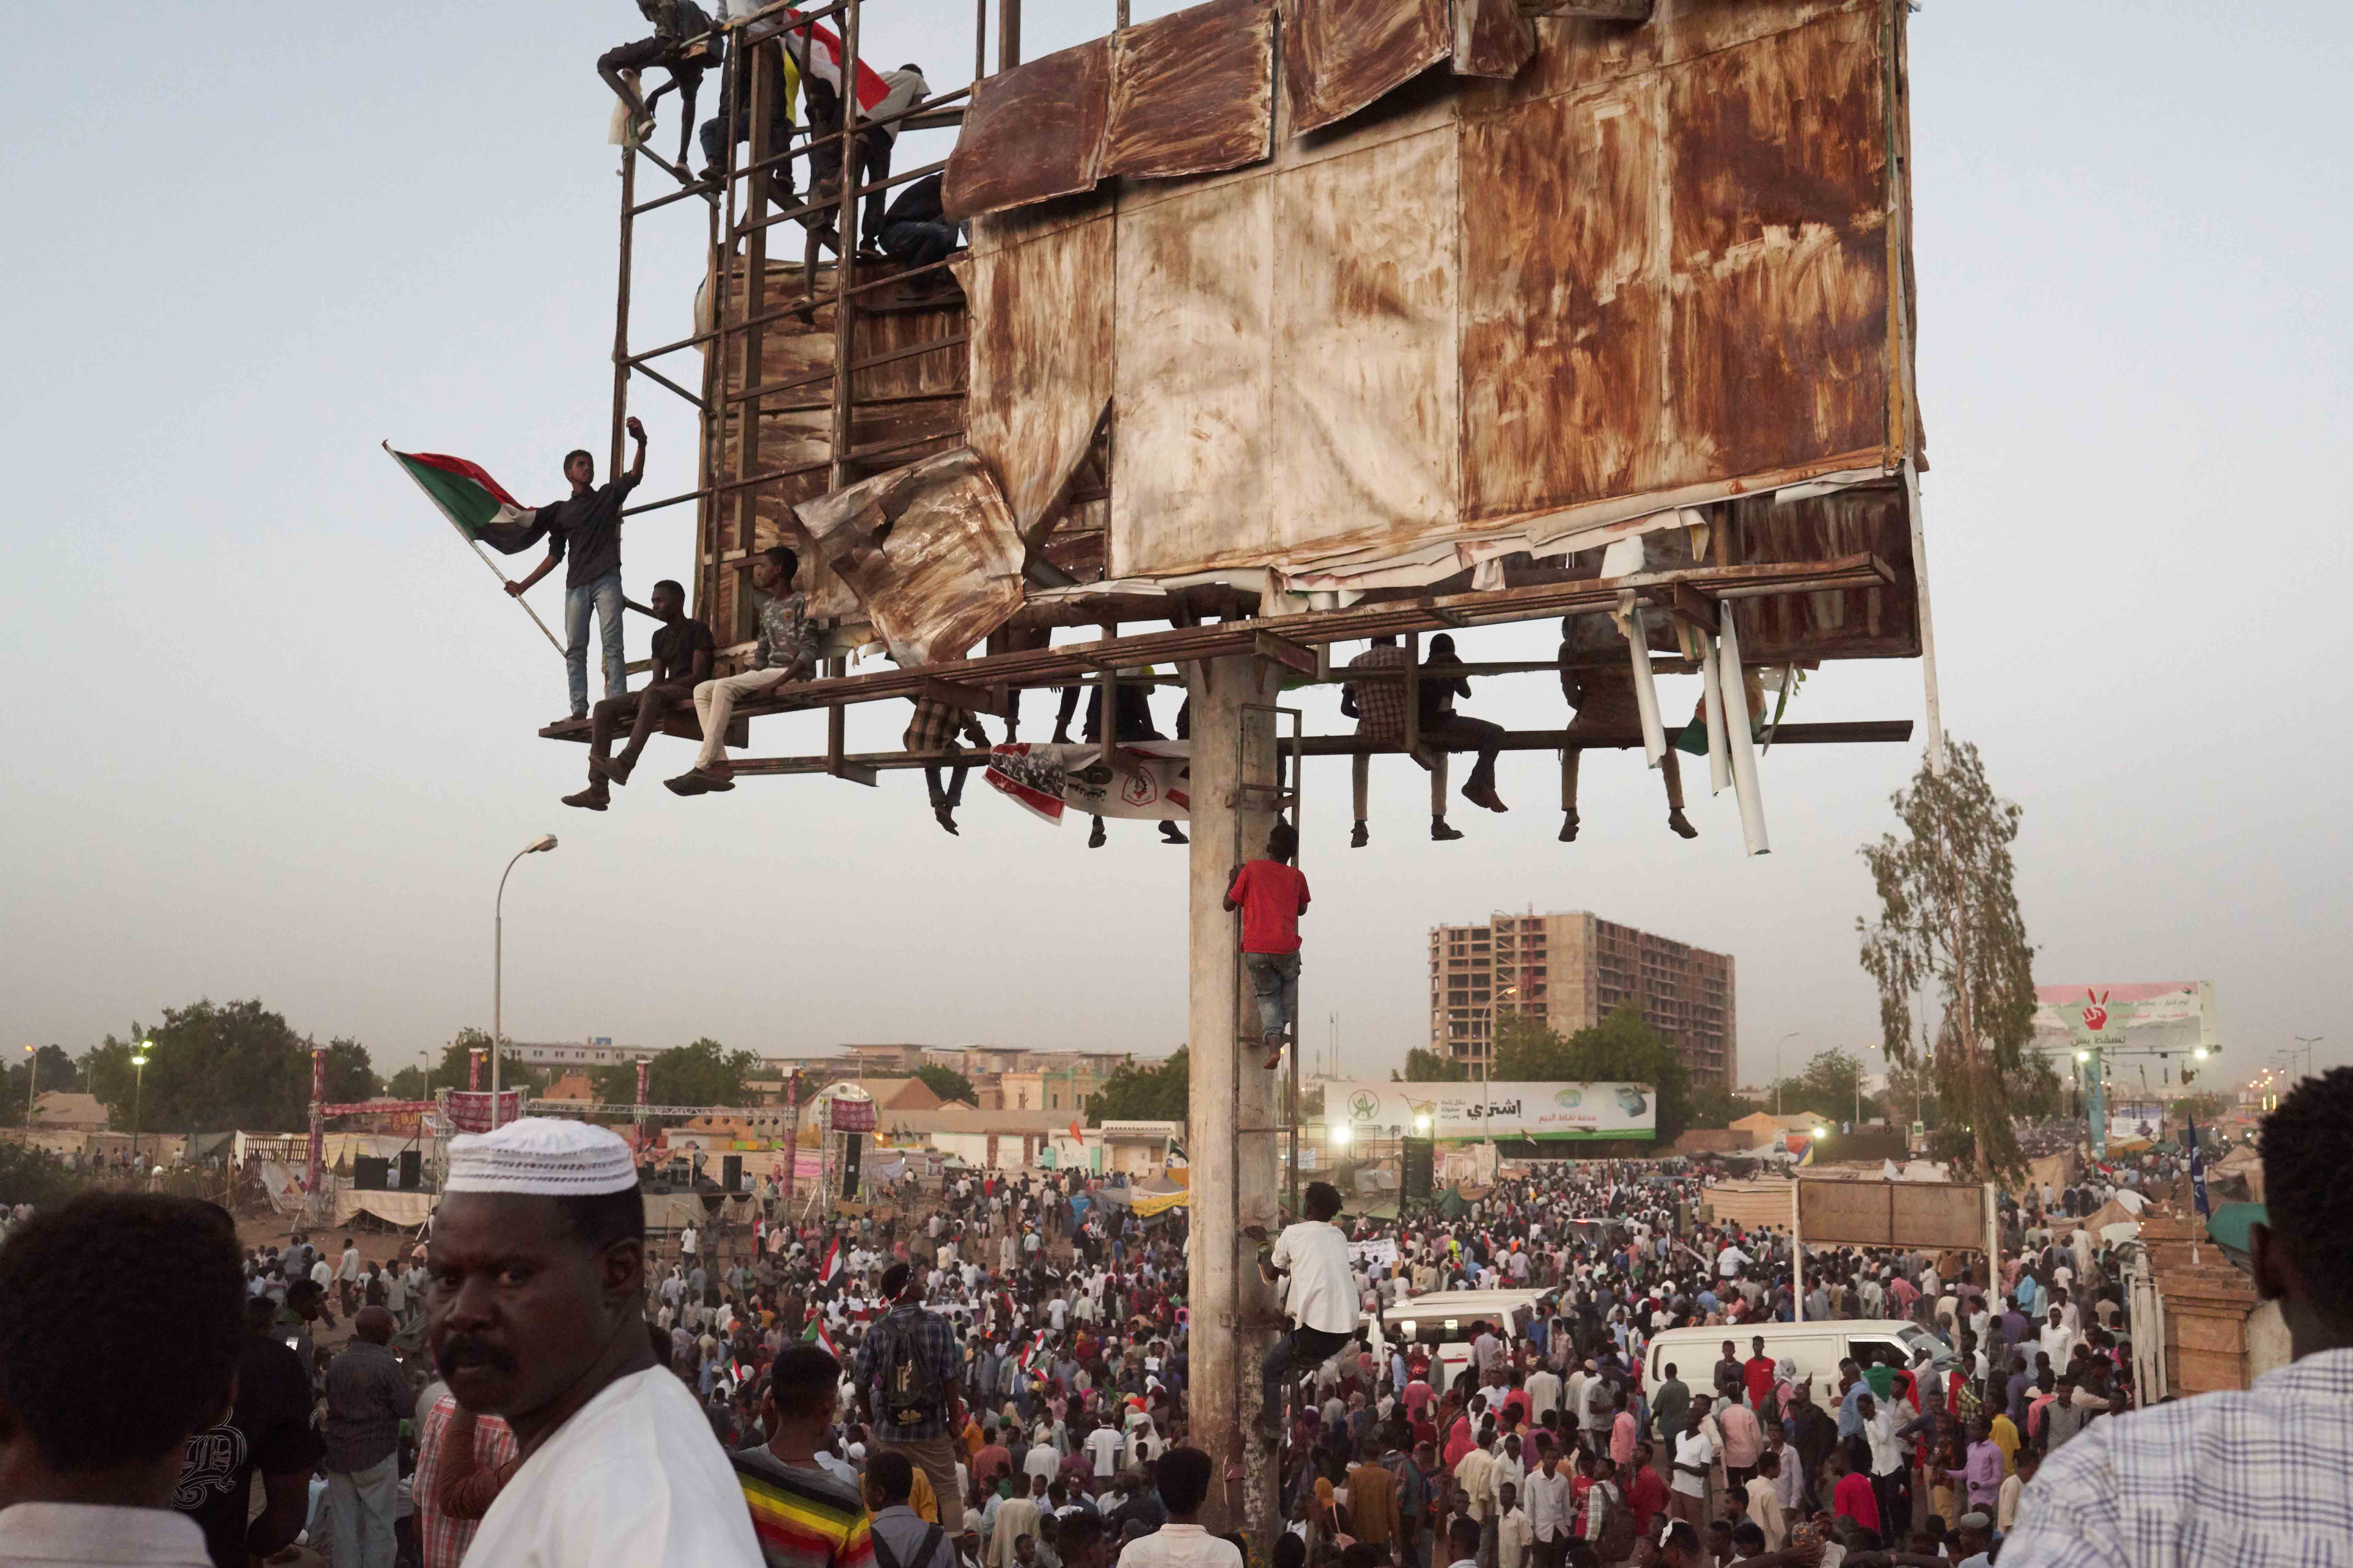 2 May 2019: Protesters pour into a sit-in in Khartoum, Sudan, around sunset. Starting at different sites in Omdurman, Khartoum and Bahri, protesters made their way to the sit-in throughout the afternoon. (Photograph by David Degner/Getty Images)